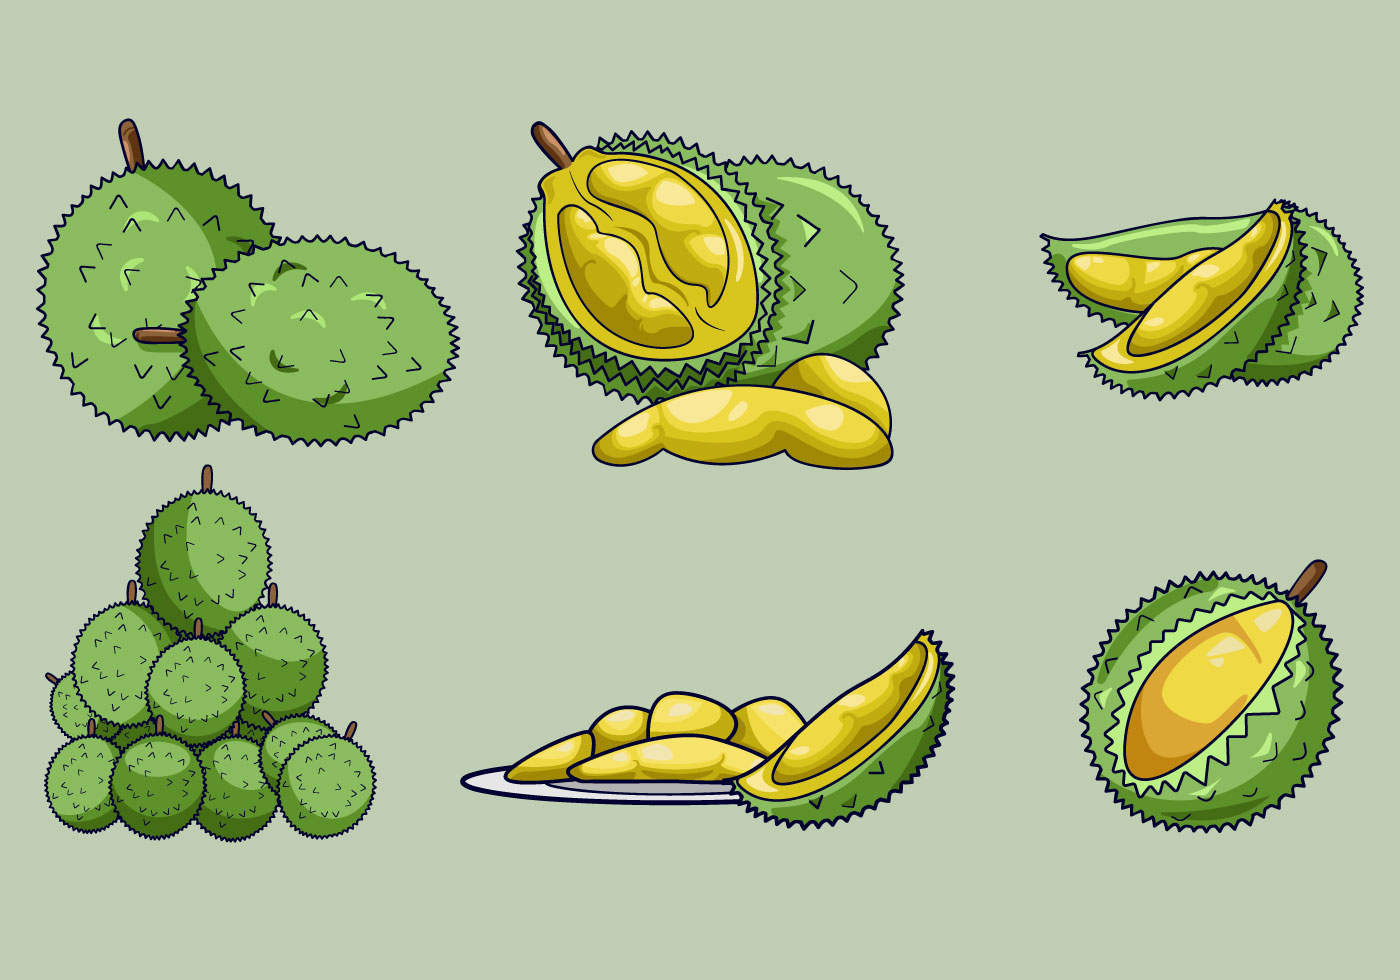 Free Download Png And Vector: Delicious Durian Fruits Vector